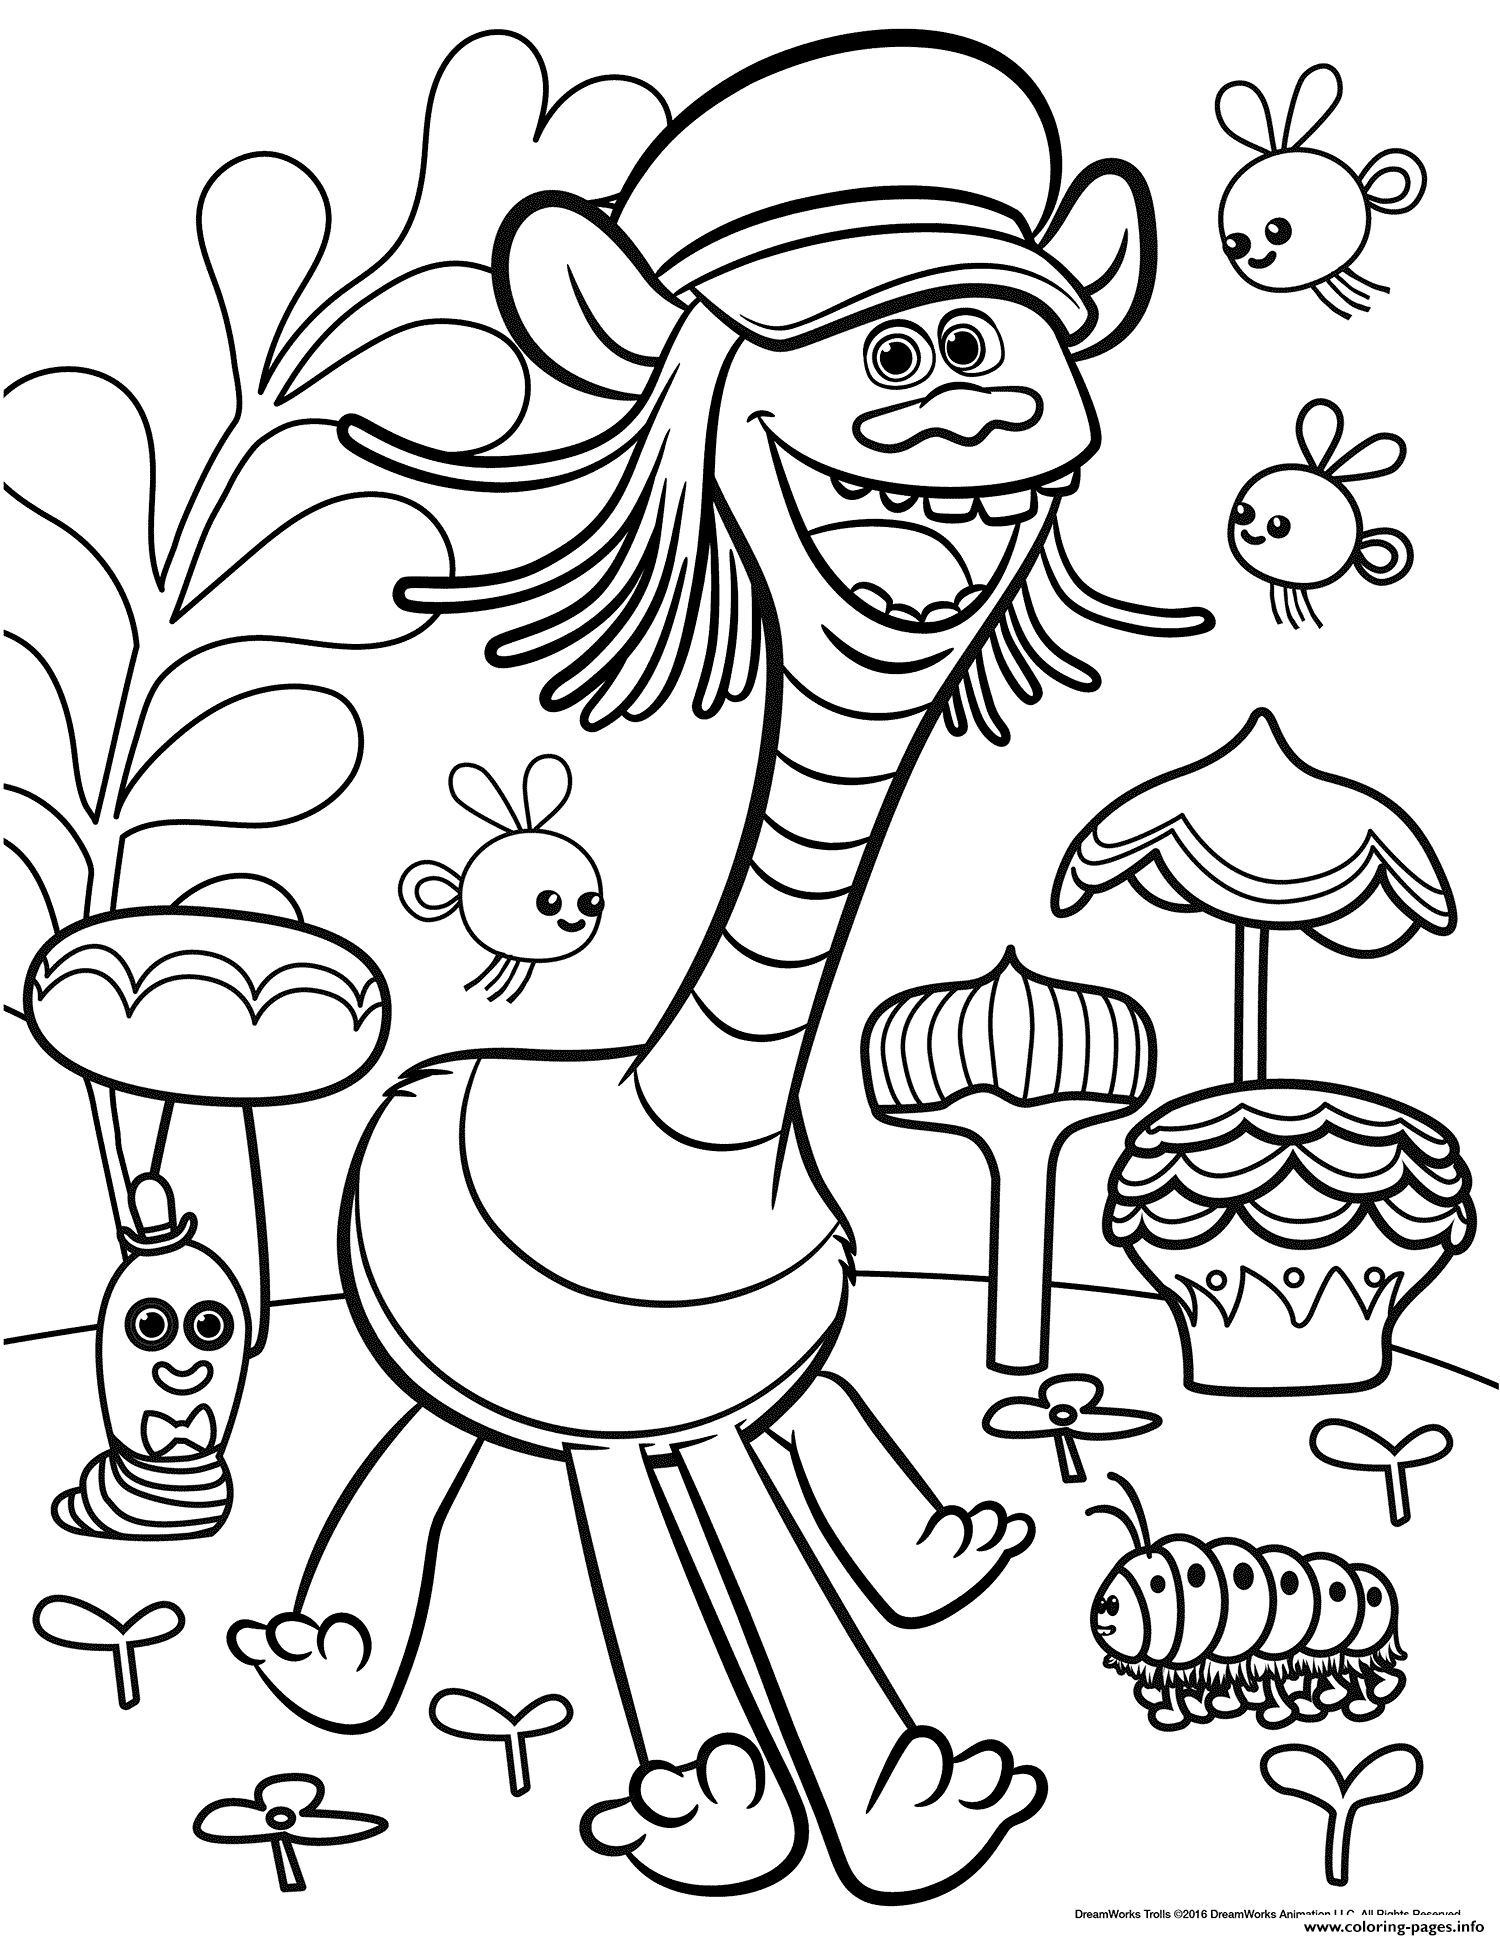 image about Trolls Printable Coloring Pages known as Trolls Online video Colour Troll Coloring Web pages Printable